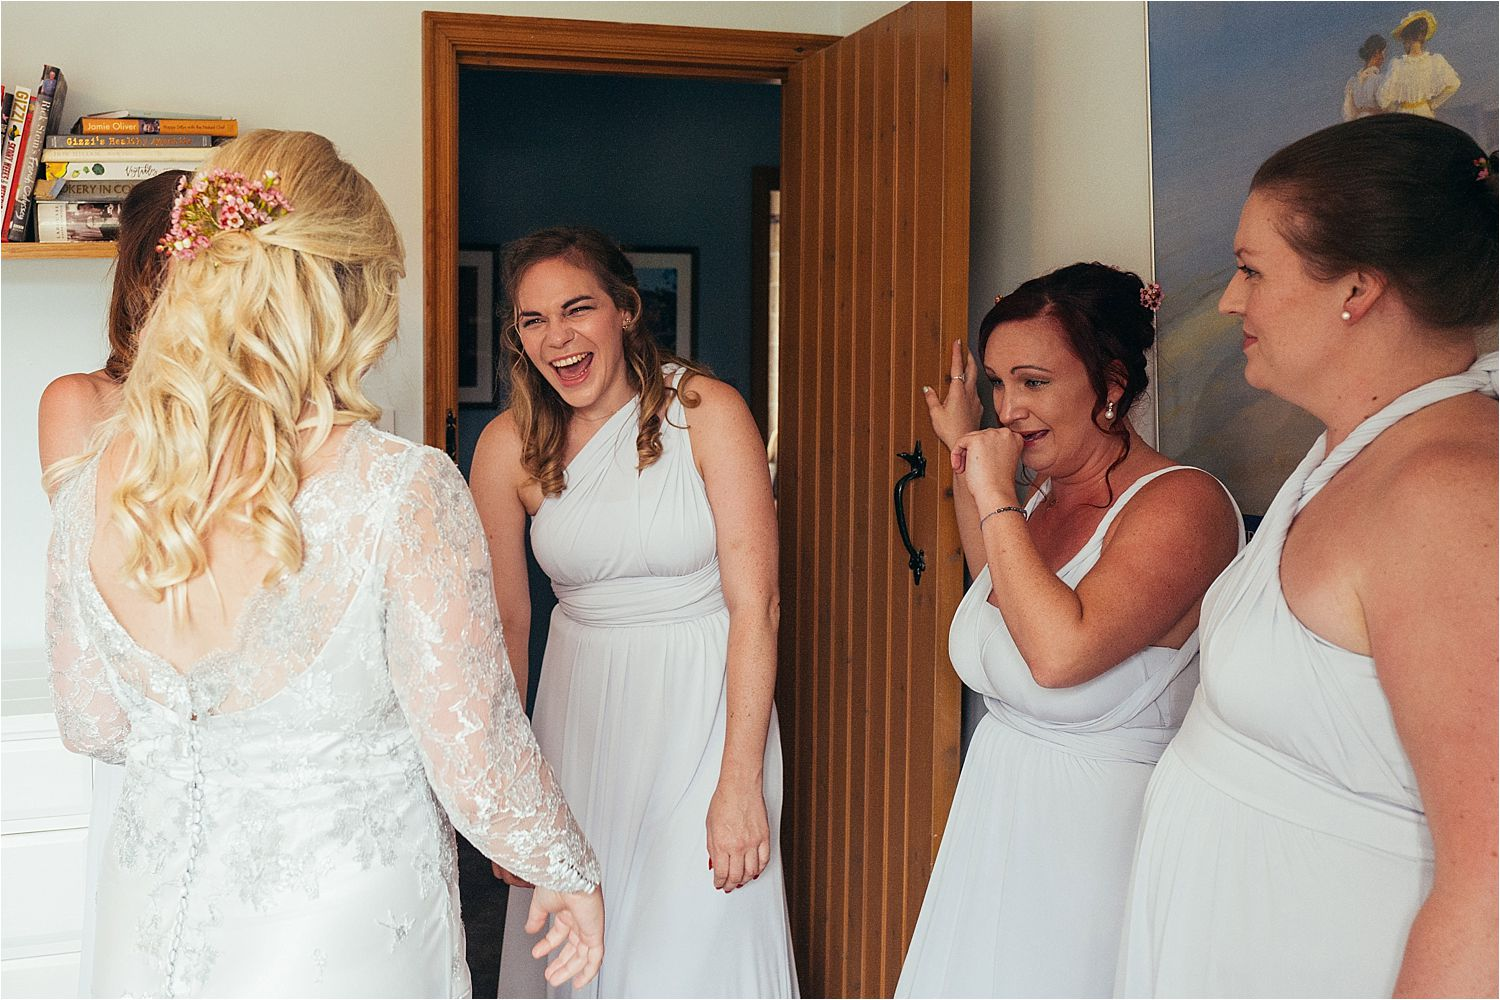 Bridesmaids greet the bride in her Soon Bride dress prior to her Bedfordshire wedding